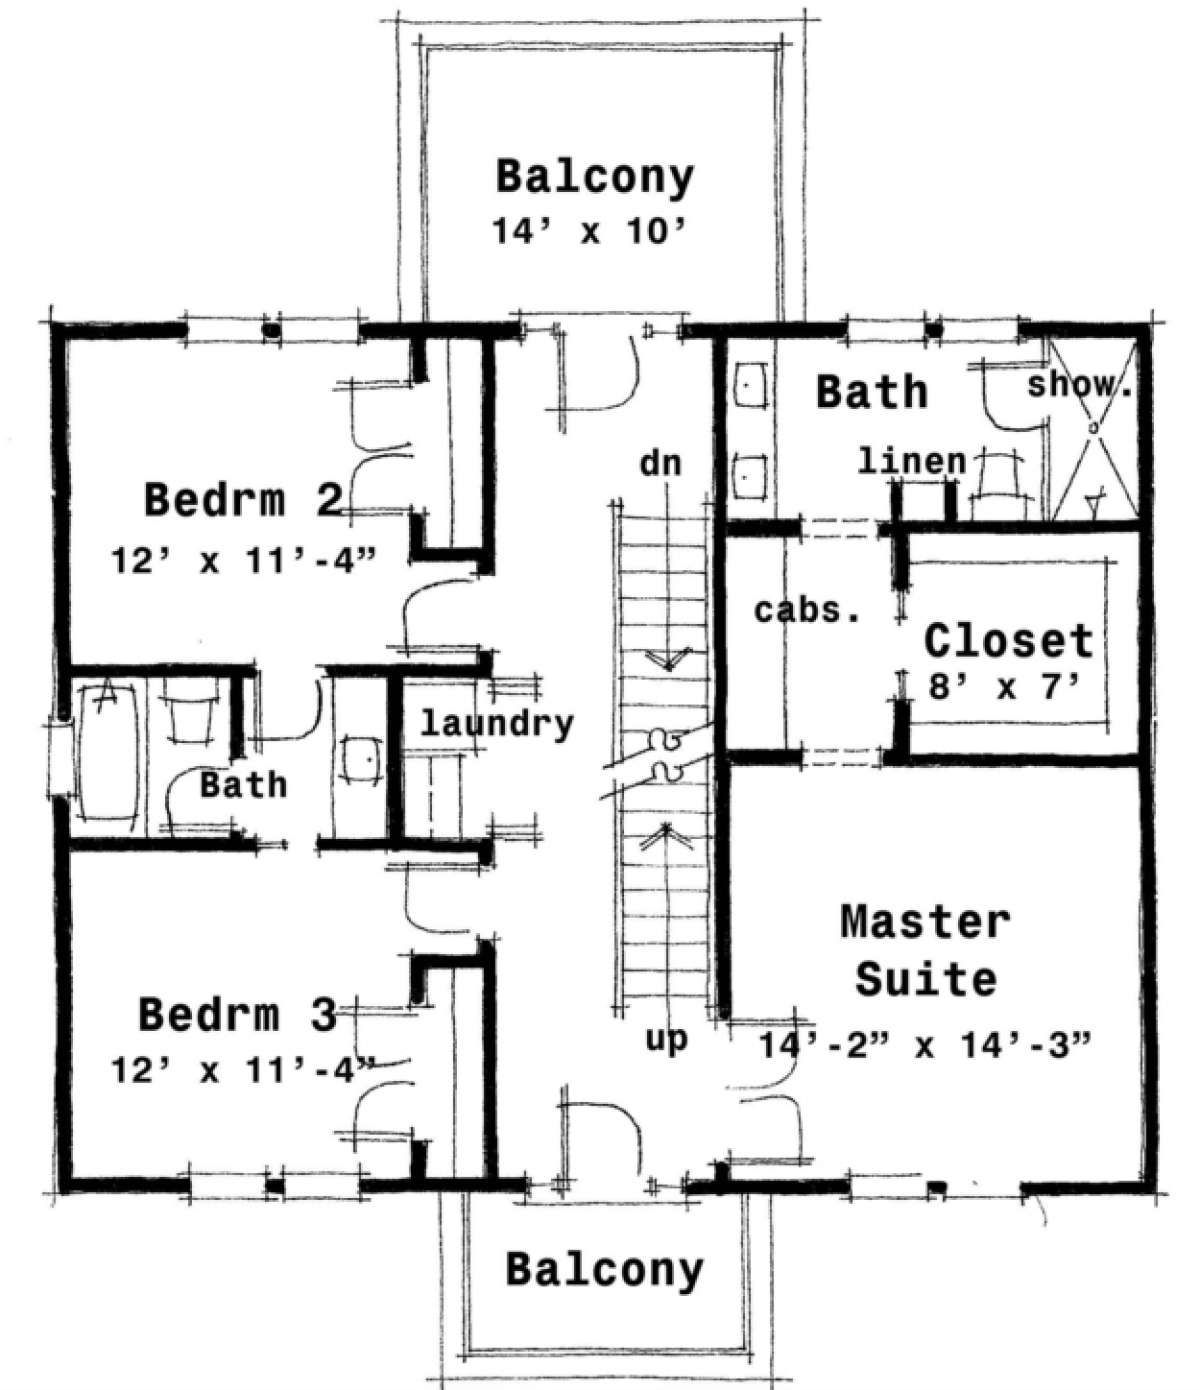 House Plan 028 00027 Colonial Plan 2 280 Square Feet 3 Bedrooms 2 5 Bathrooms In 2021 Colonial House Plans Center Hall Colonial Colonial House